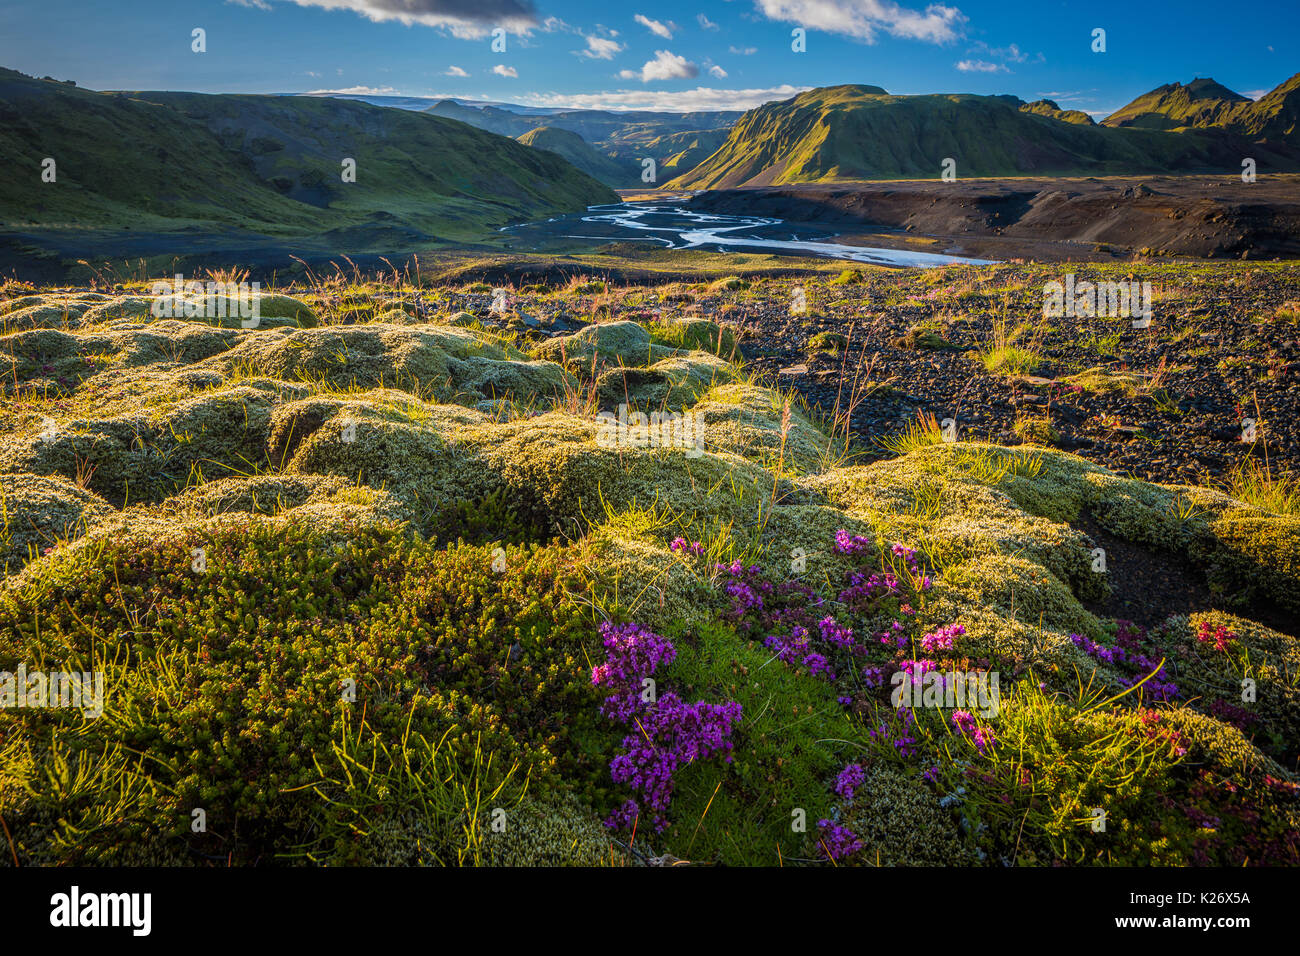 Moss and scenery in the Southern Region of Iceland - Stock Image